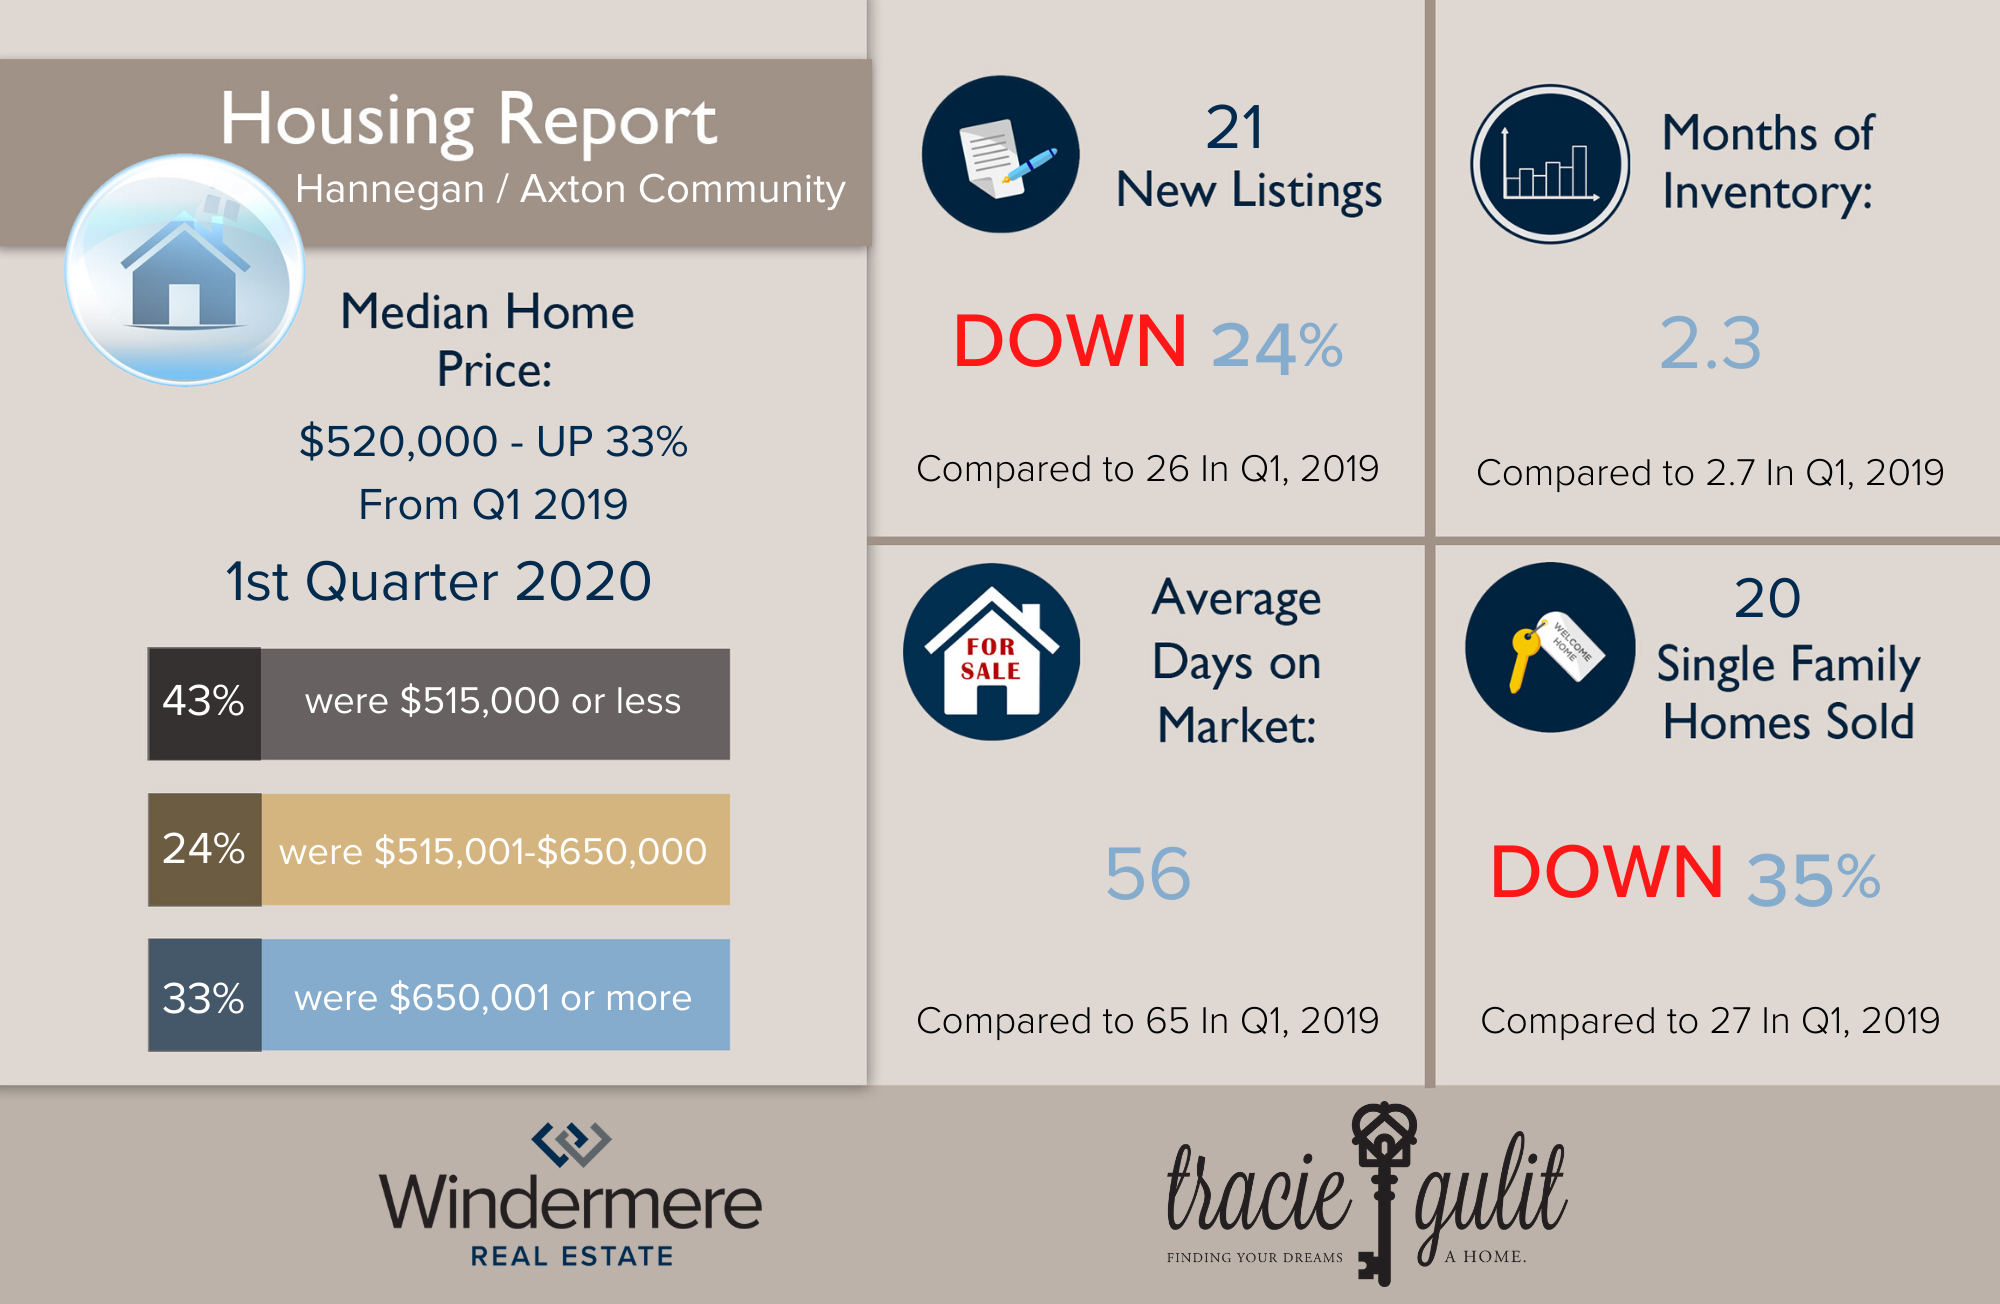 Tracie Housing Report Infographic (2)